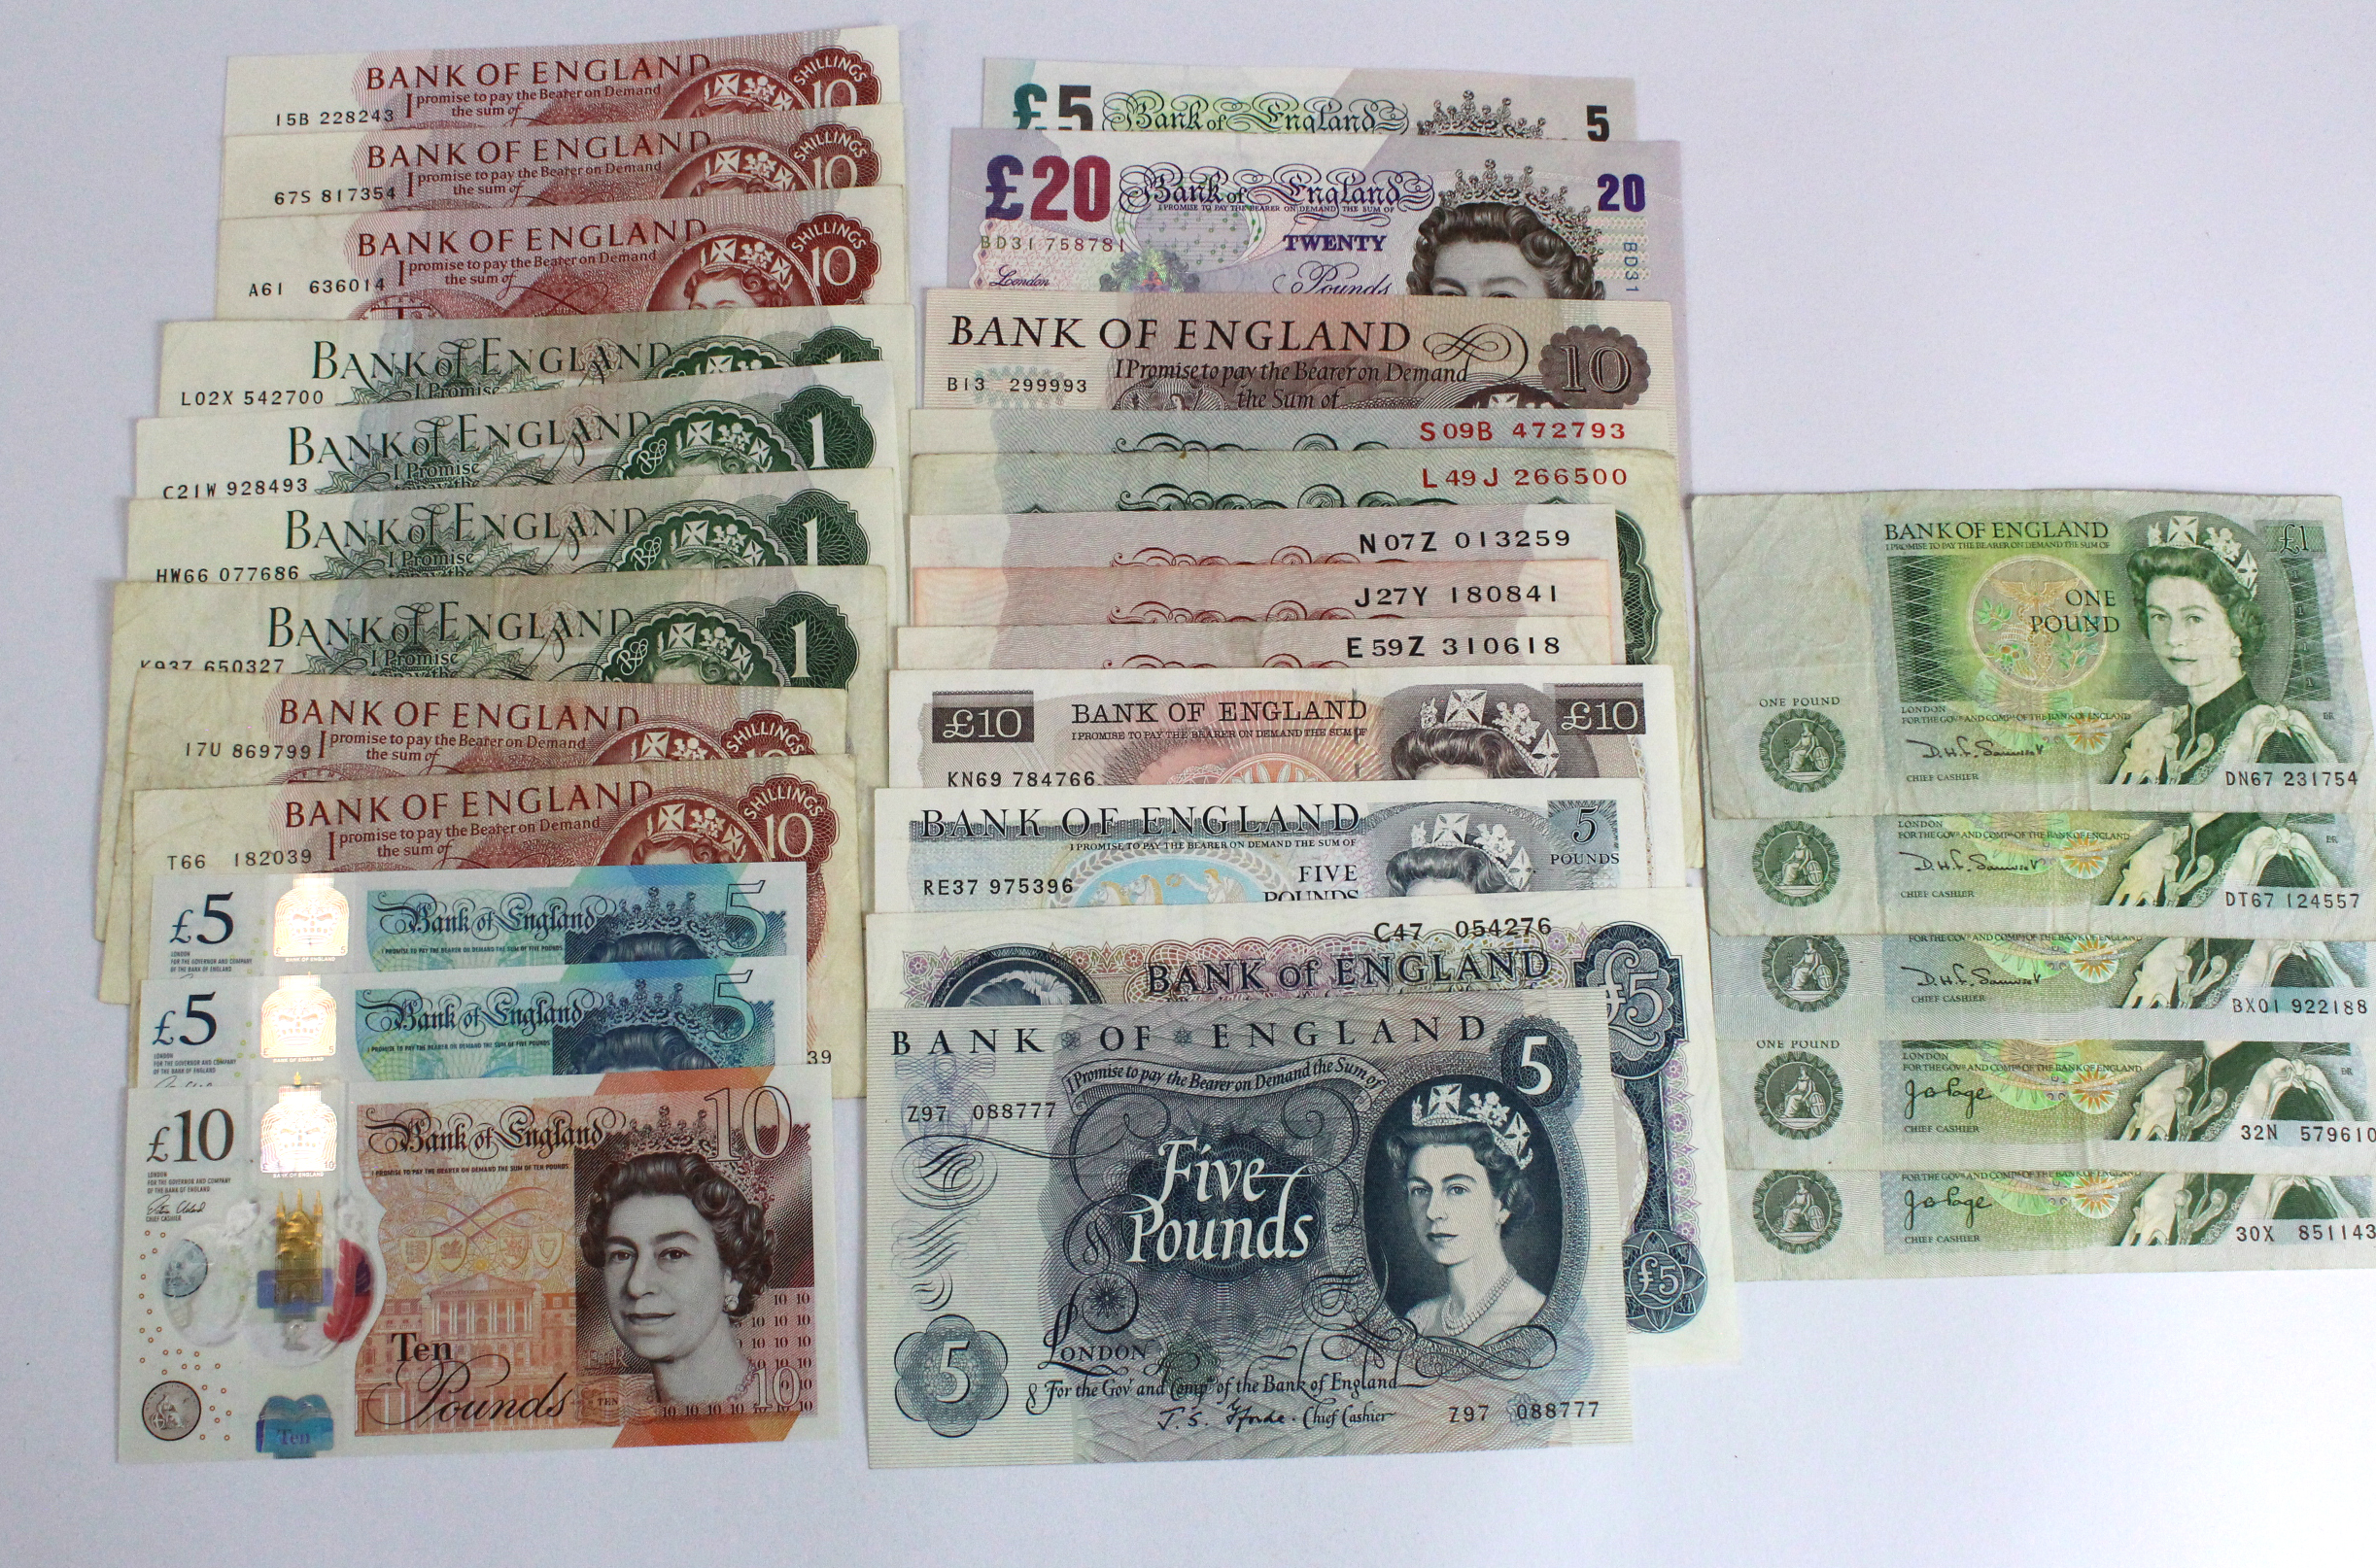 Bank of England (29), denominations from 10 Shillings to 20 Pounds, signatures ranging from Peppiatt